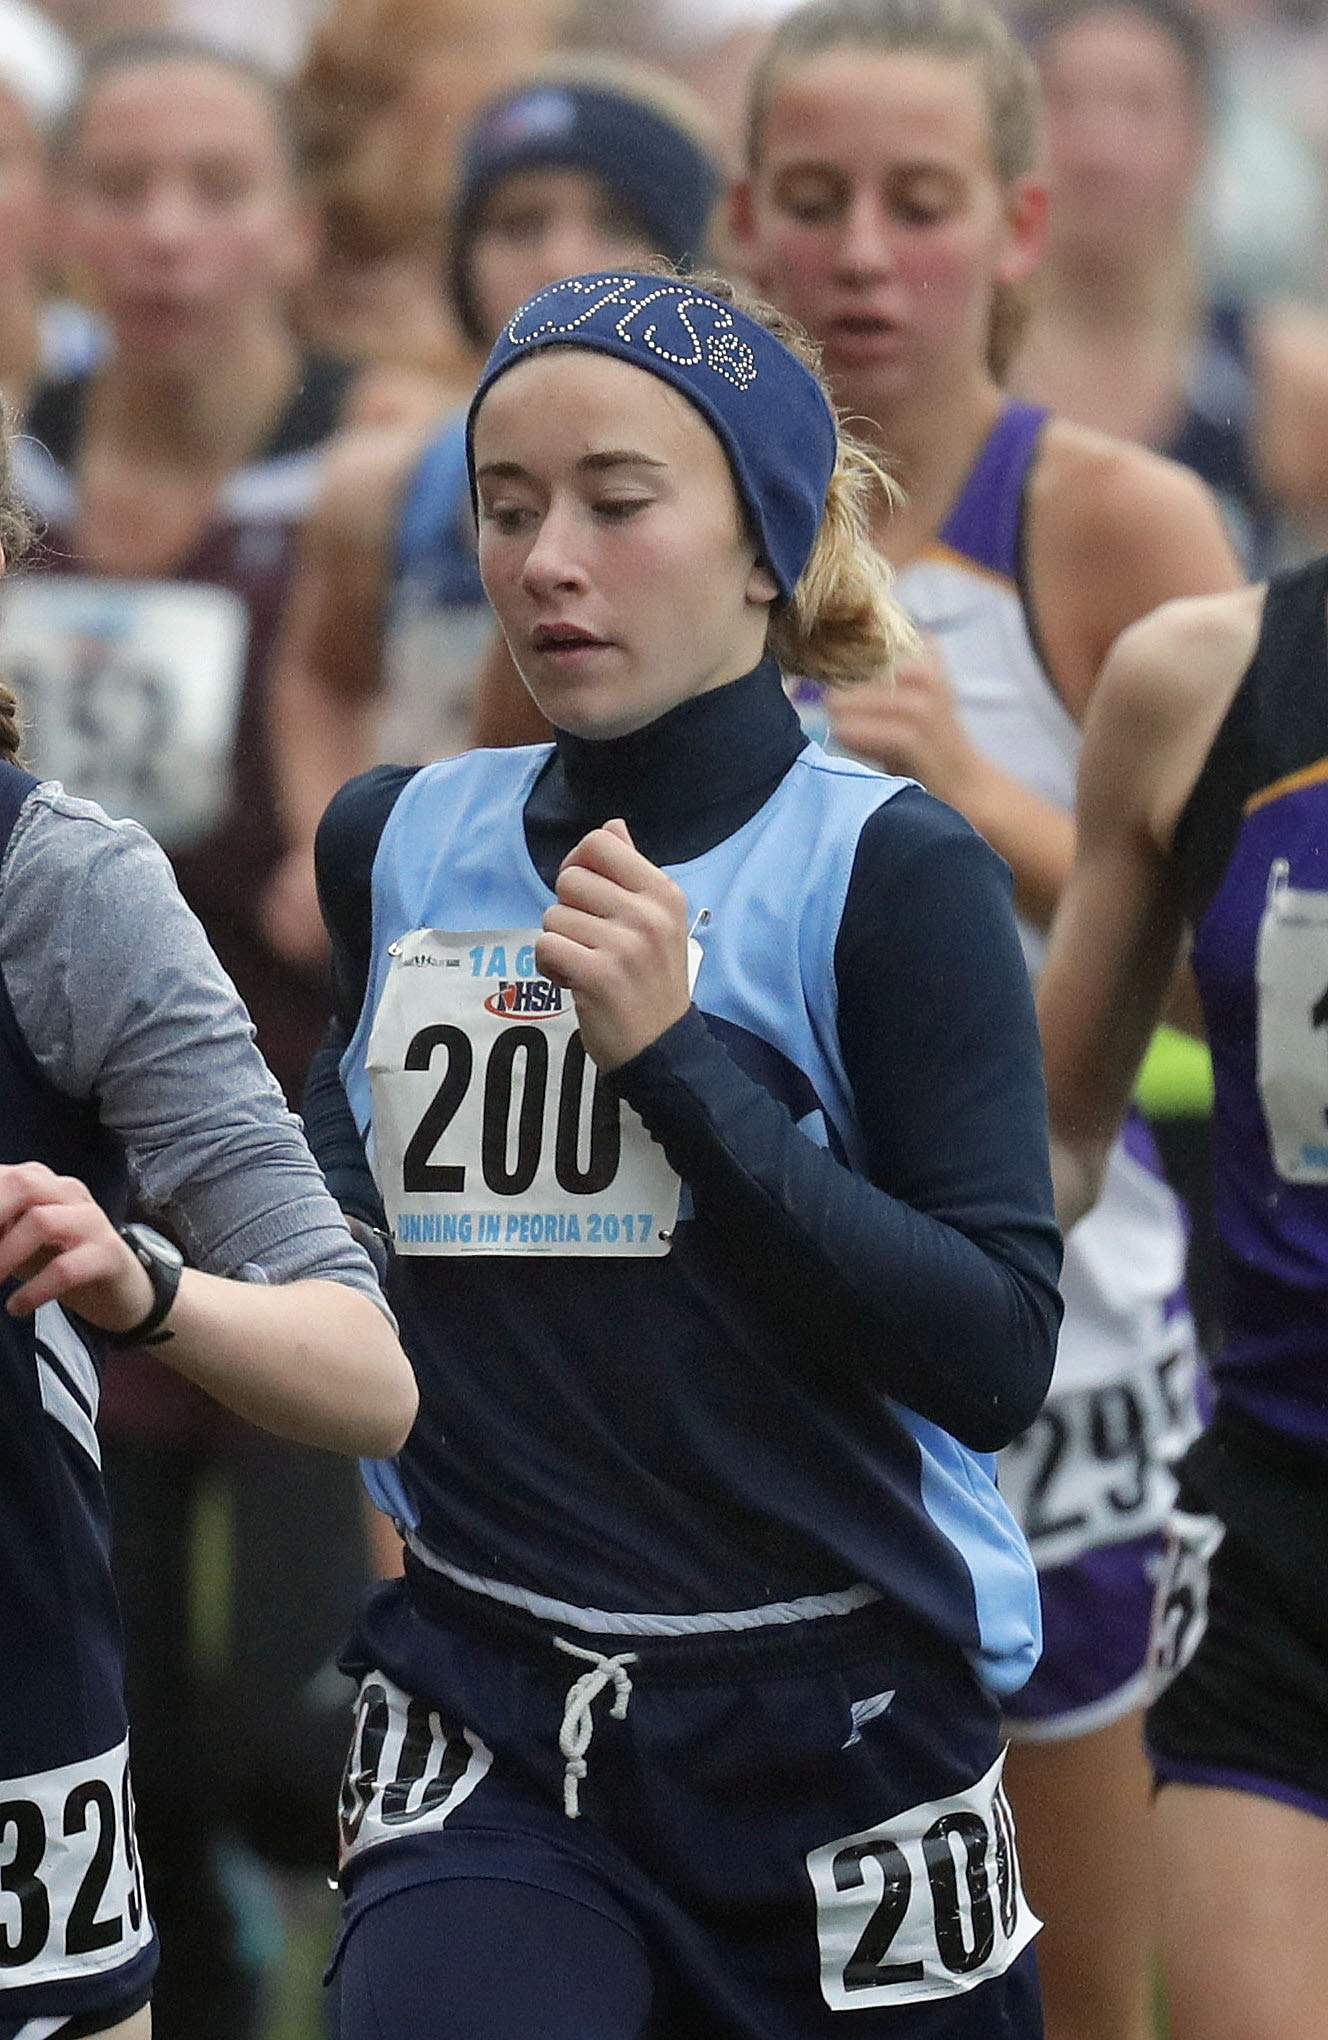 Pinckneyville's Dakota Krone (200) runs in the girls Class 1A cross-country finals Saturday in Peoria.